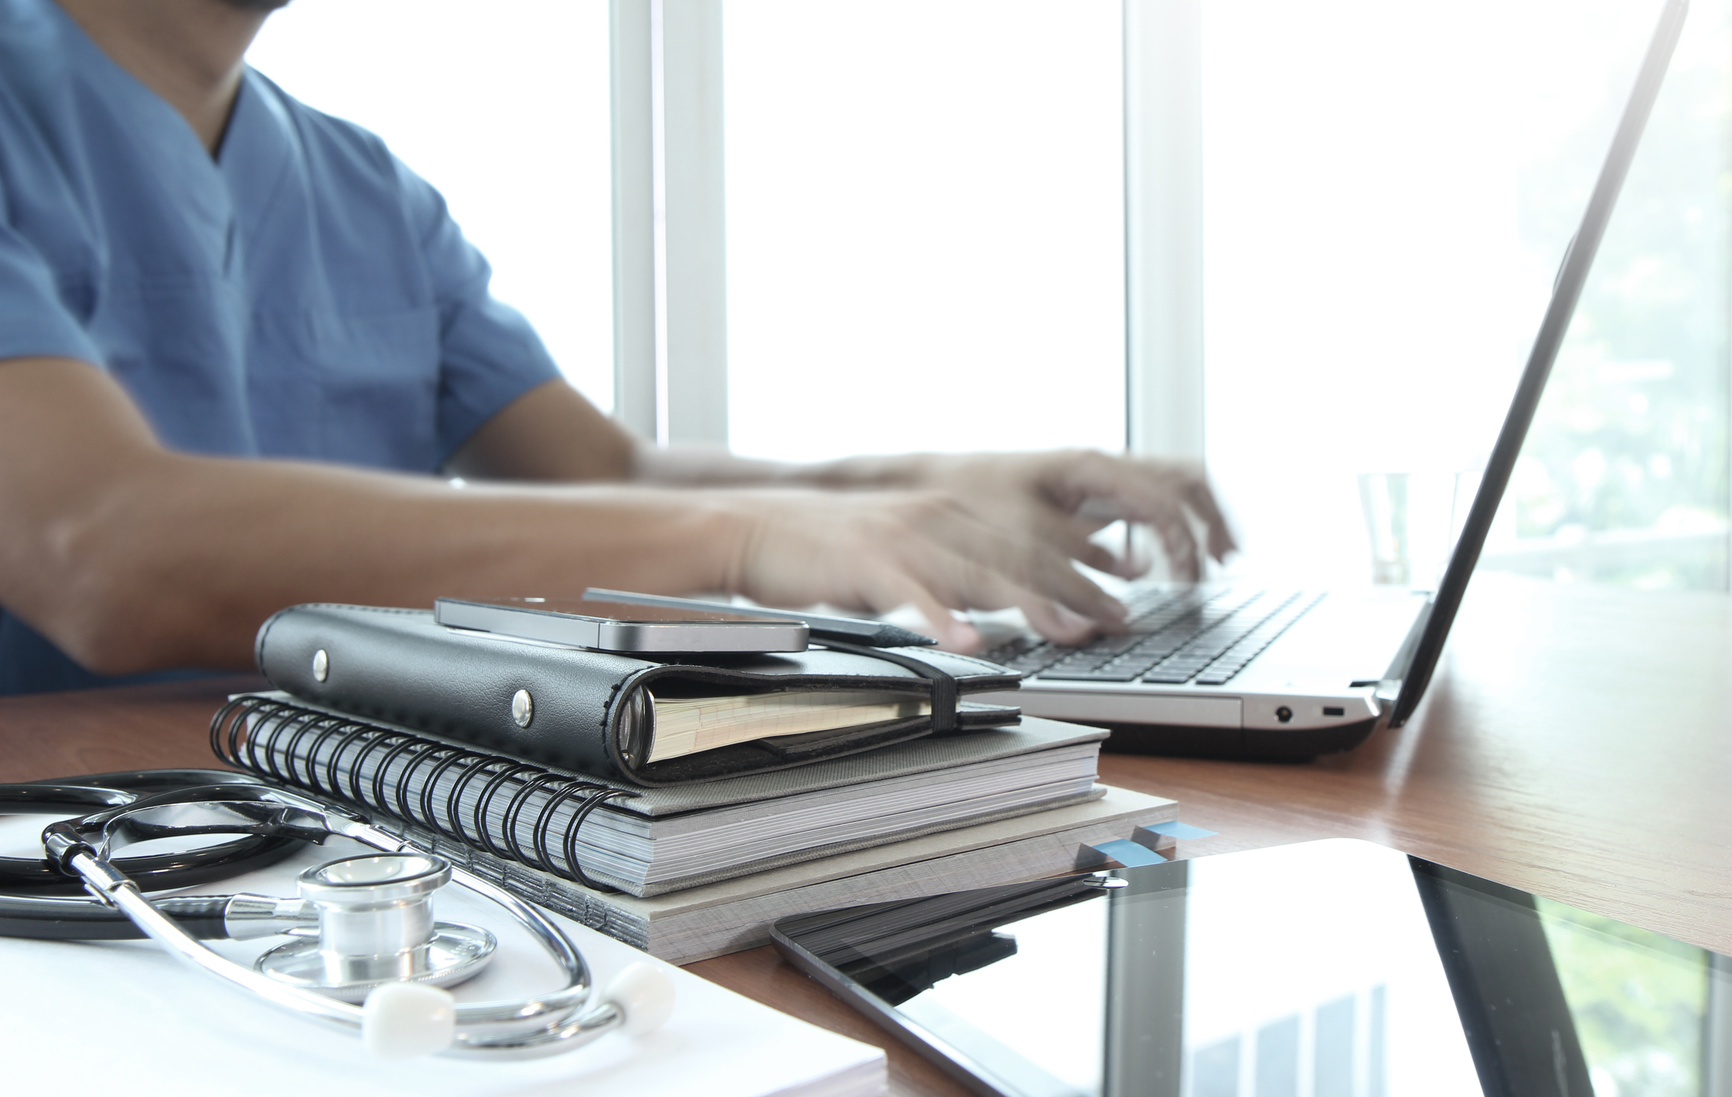 Doctor working with laptop computer in medical workspace office